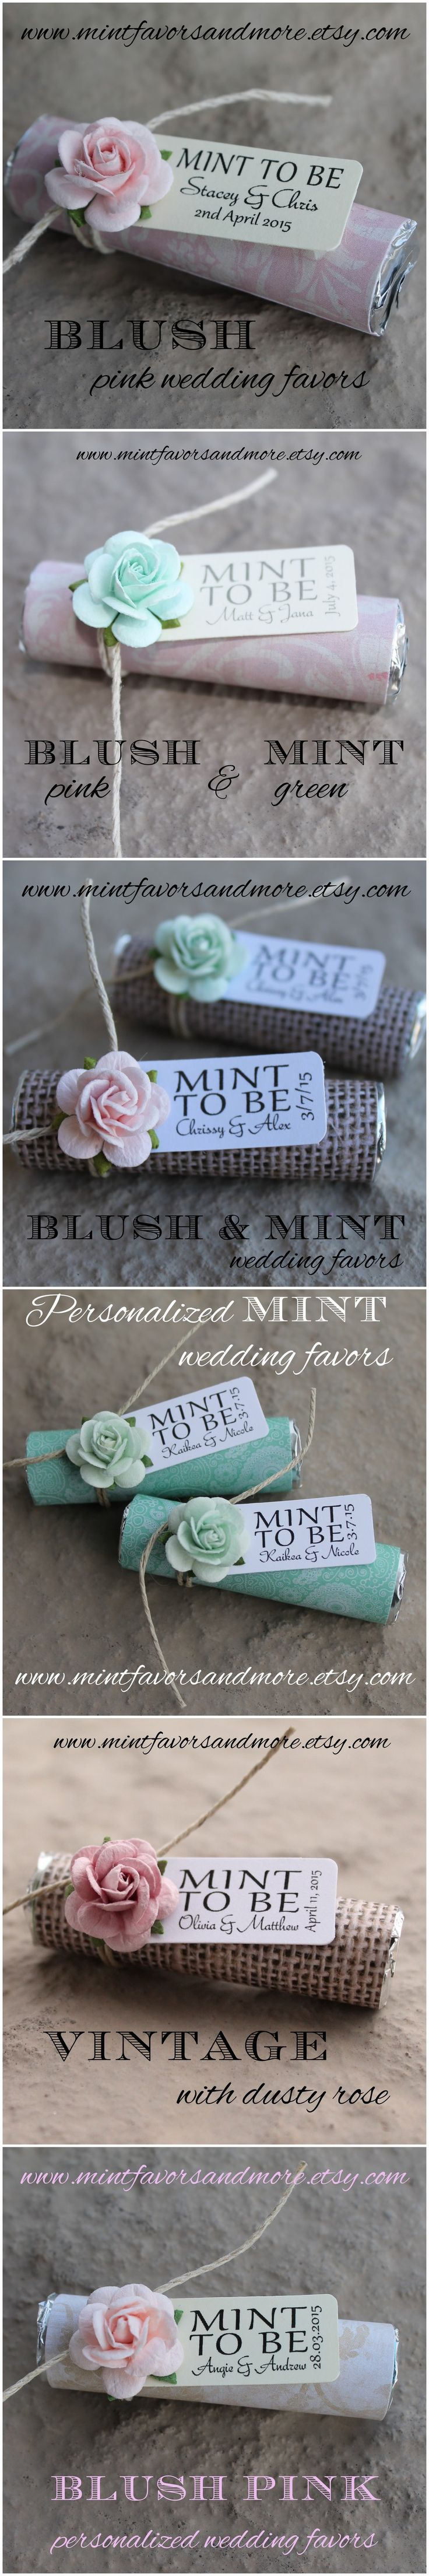 "Clink here to see more ""mint to be"" favor designs for your blush pink wedding theme. https://www.etsy.com/shop/BabyEssentialsByMel. Pale pink wedding favors personalized for your spring wedding or summer wedding!"